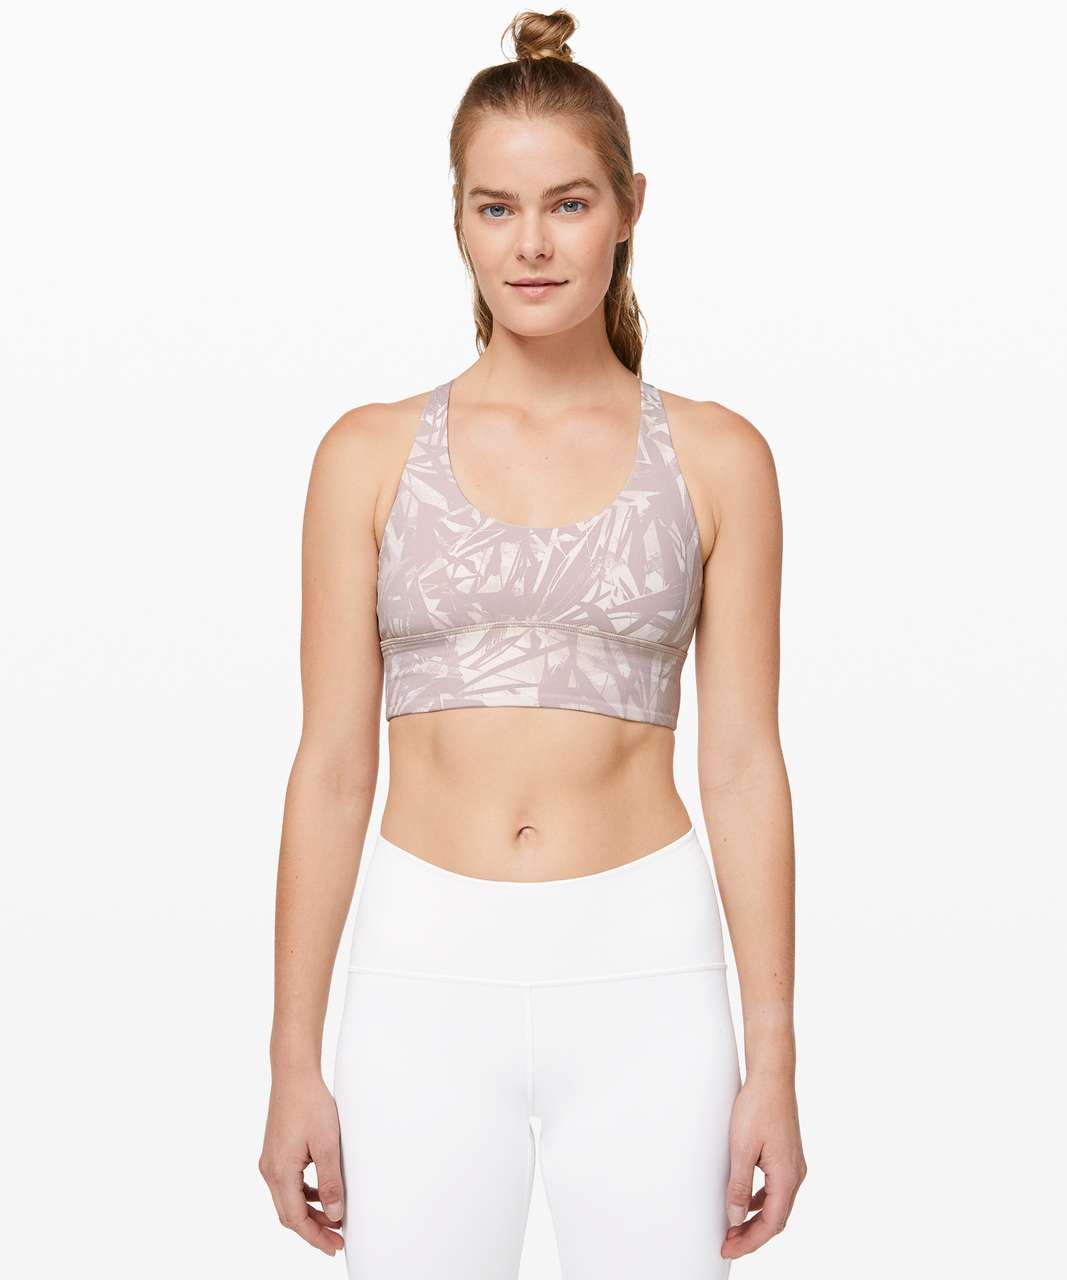 Lululemon Free To Be Moved Bra - Shadow Leaf Light Ivory Muse / Muse